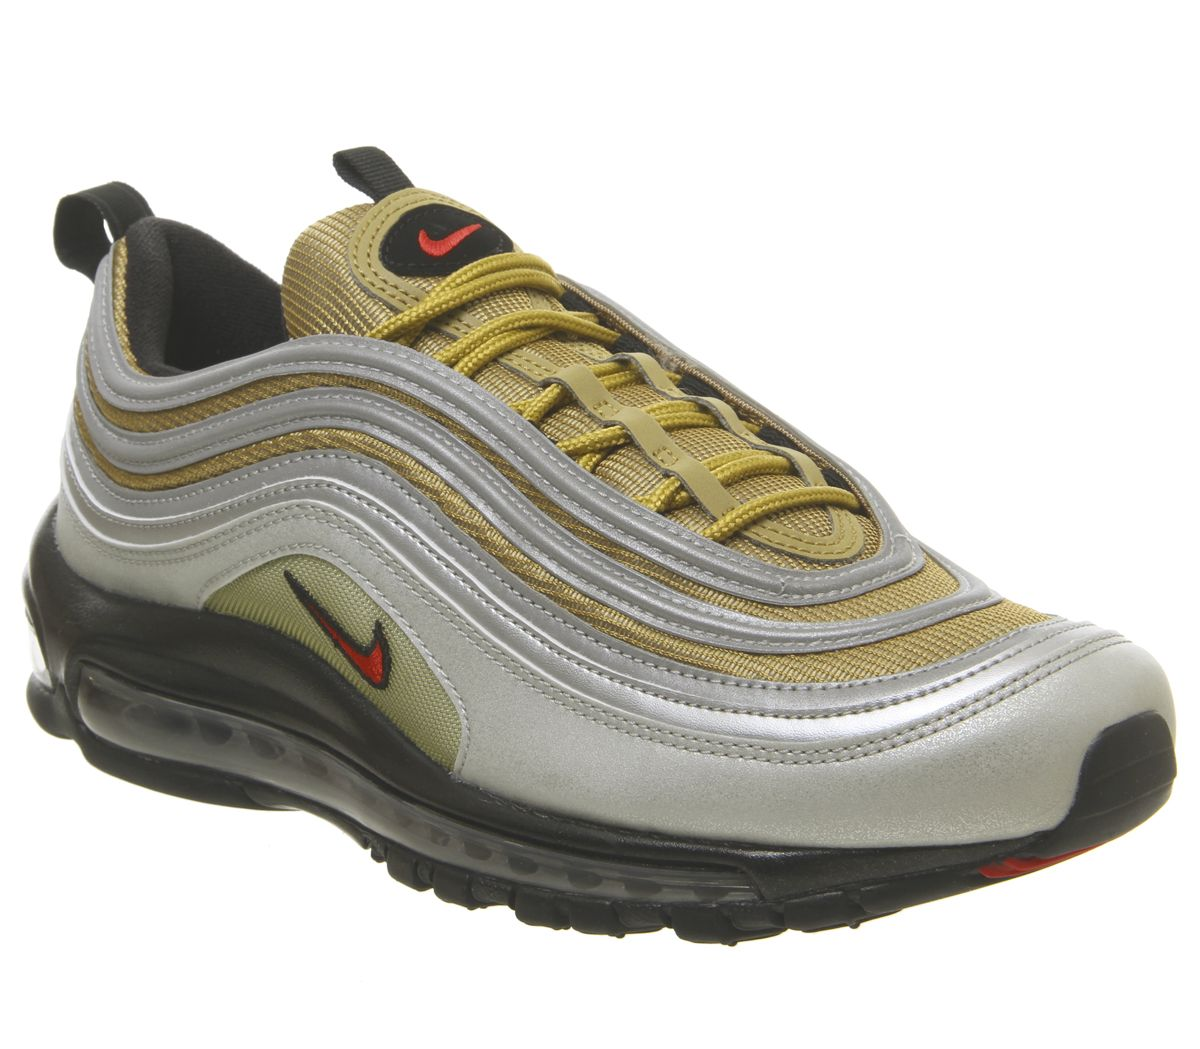 premium selection bc607 5a6f8 Nike Air Max 97 Trainers Silver Gold Black - His trainers